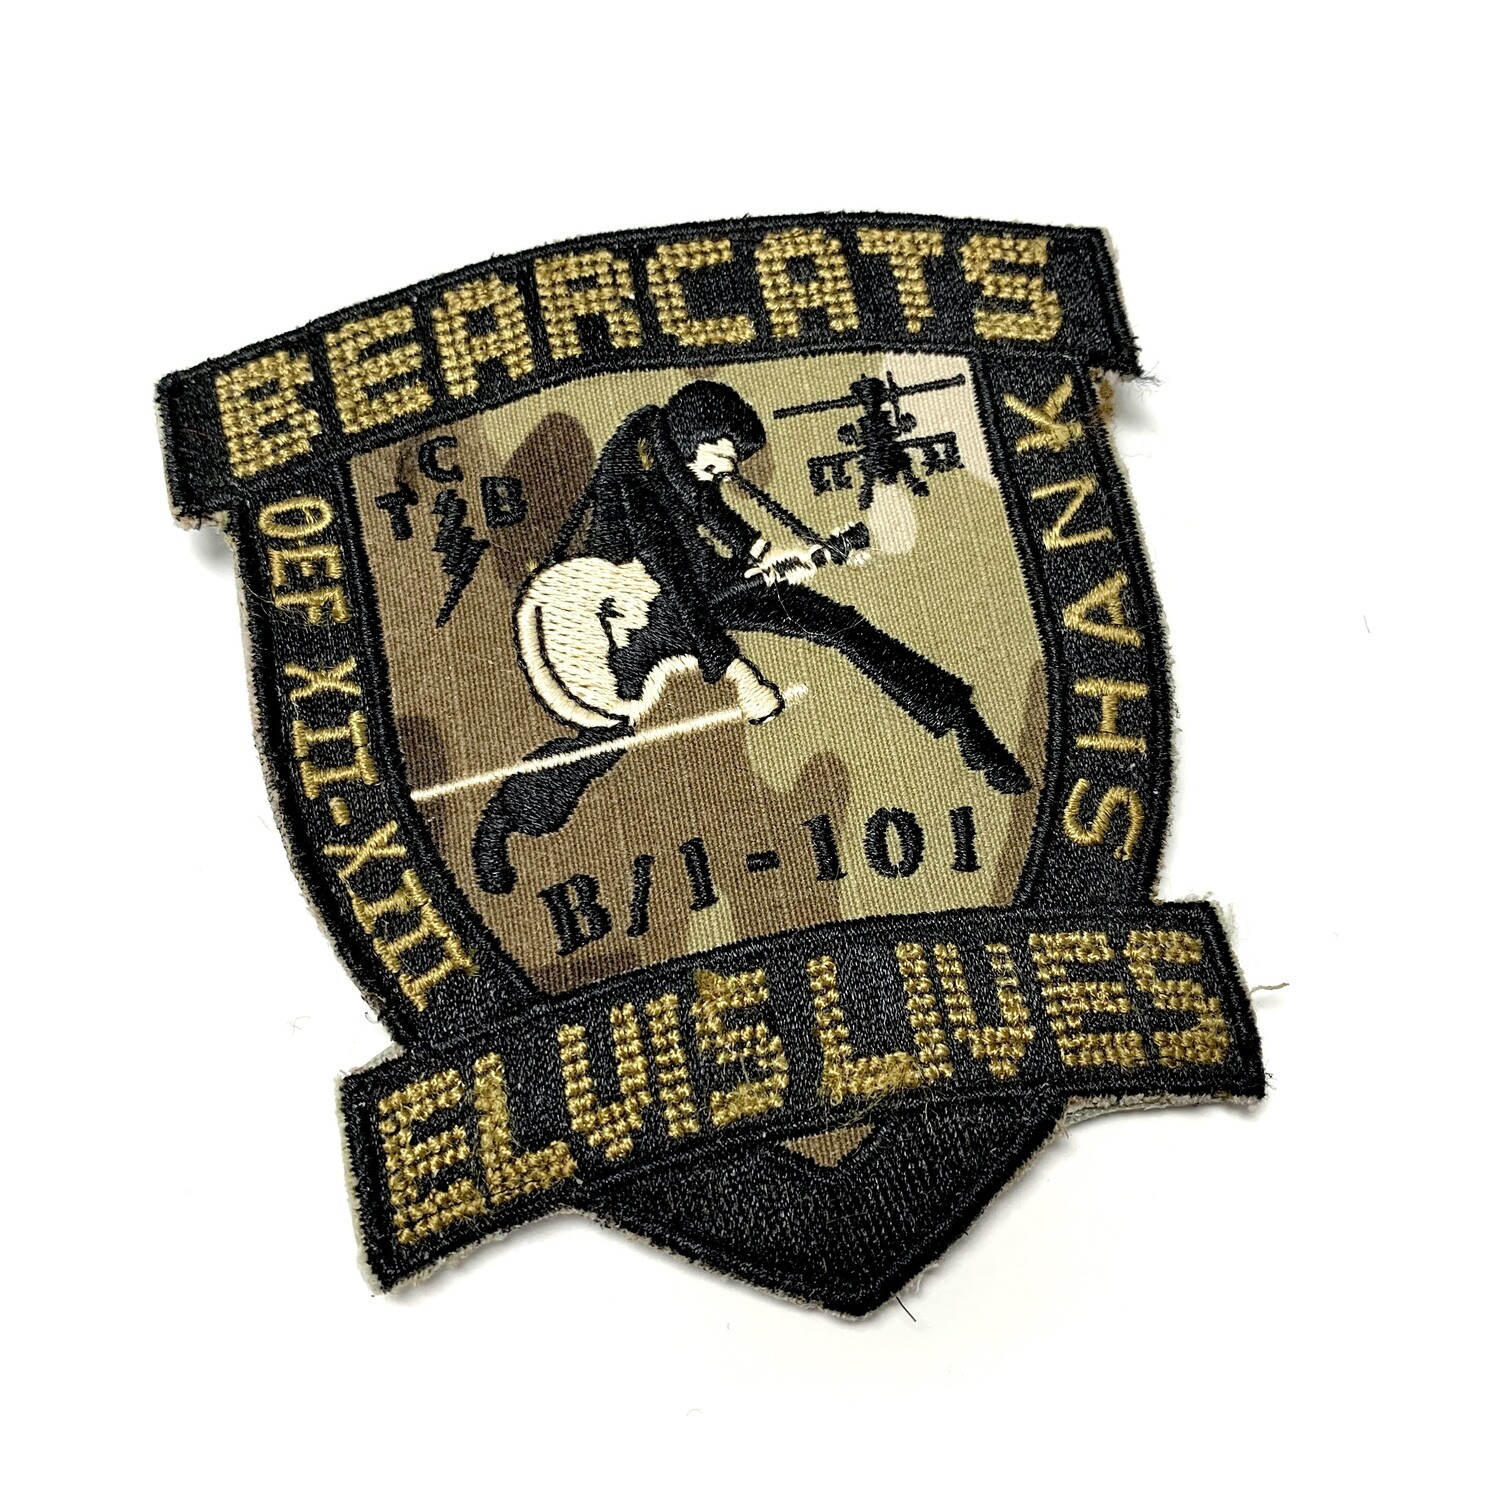 """B Co 1-101 """"Bearcats"""" OEF XII-XIII Legacy Patch"""